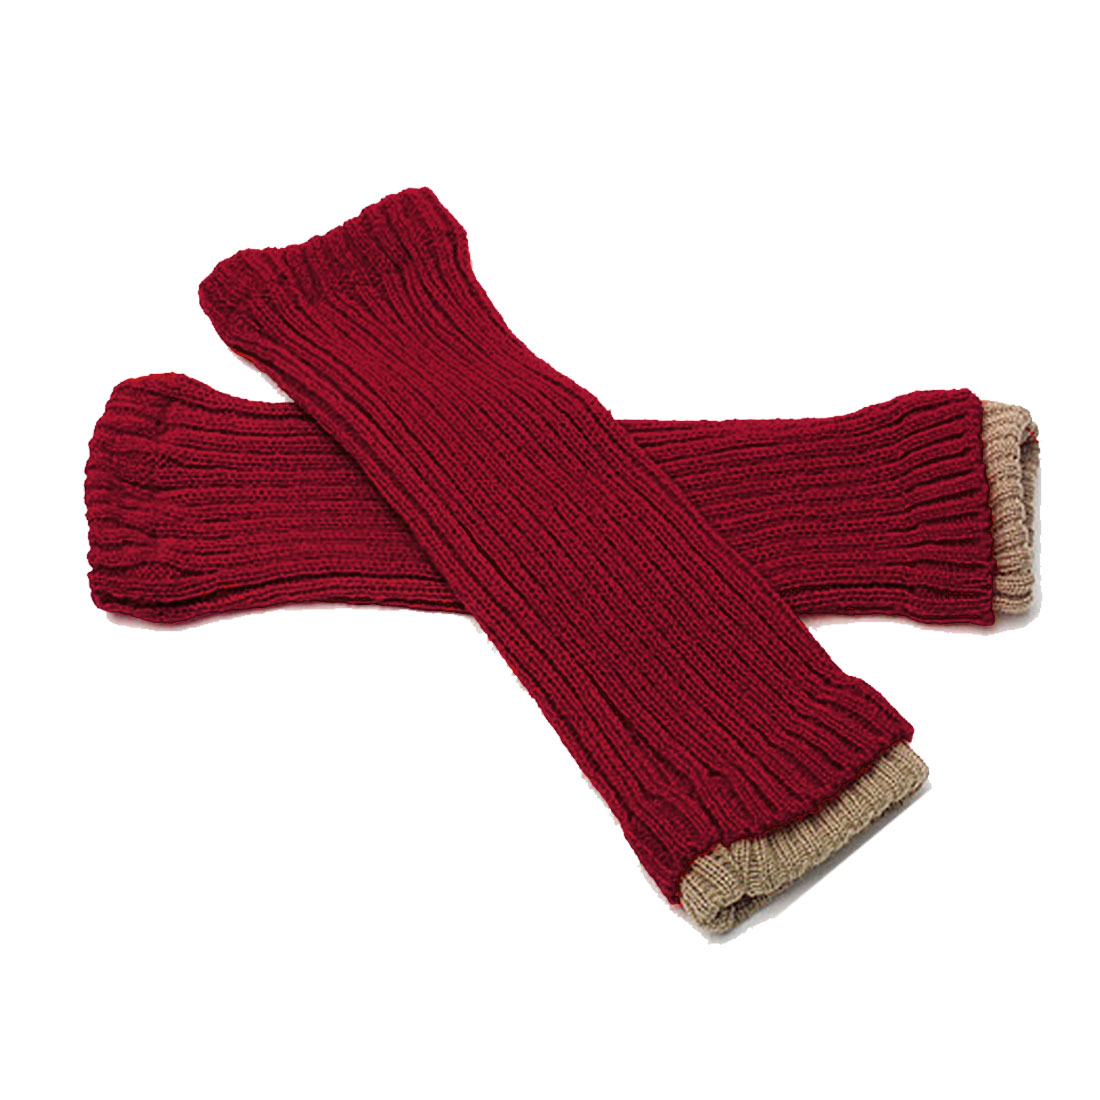 "Mens Red Ribbing Fingerless Stretch 13.4"" Long Winter Warmers Gloves"